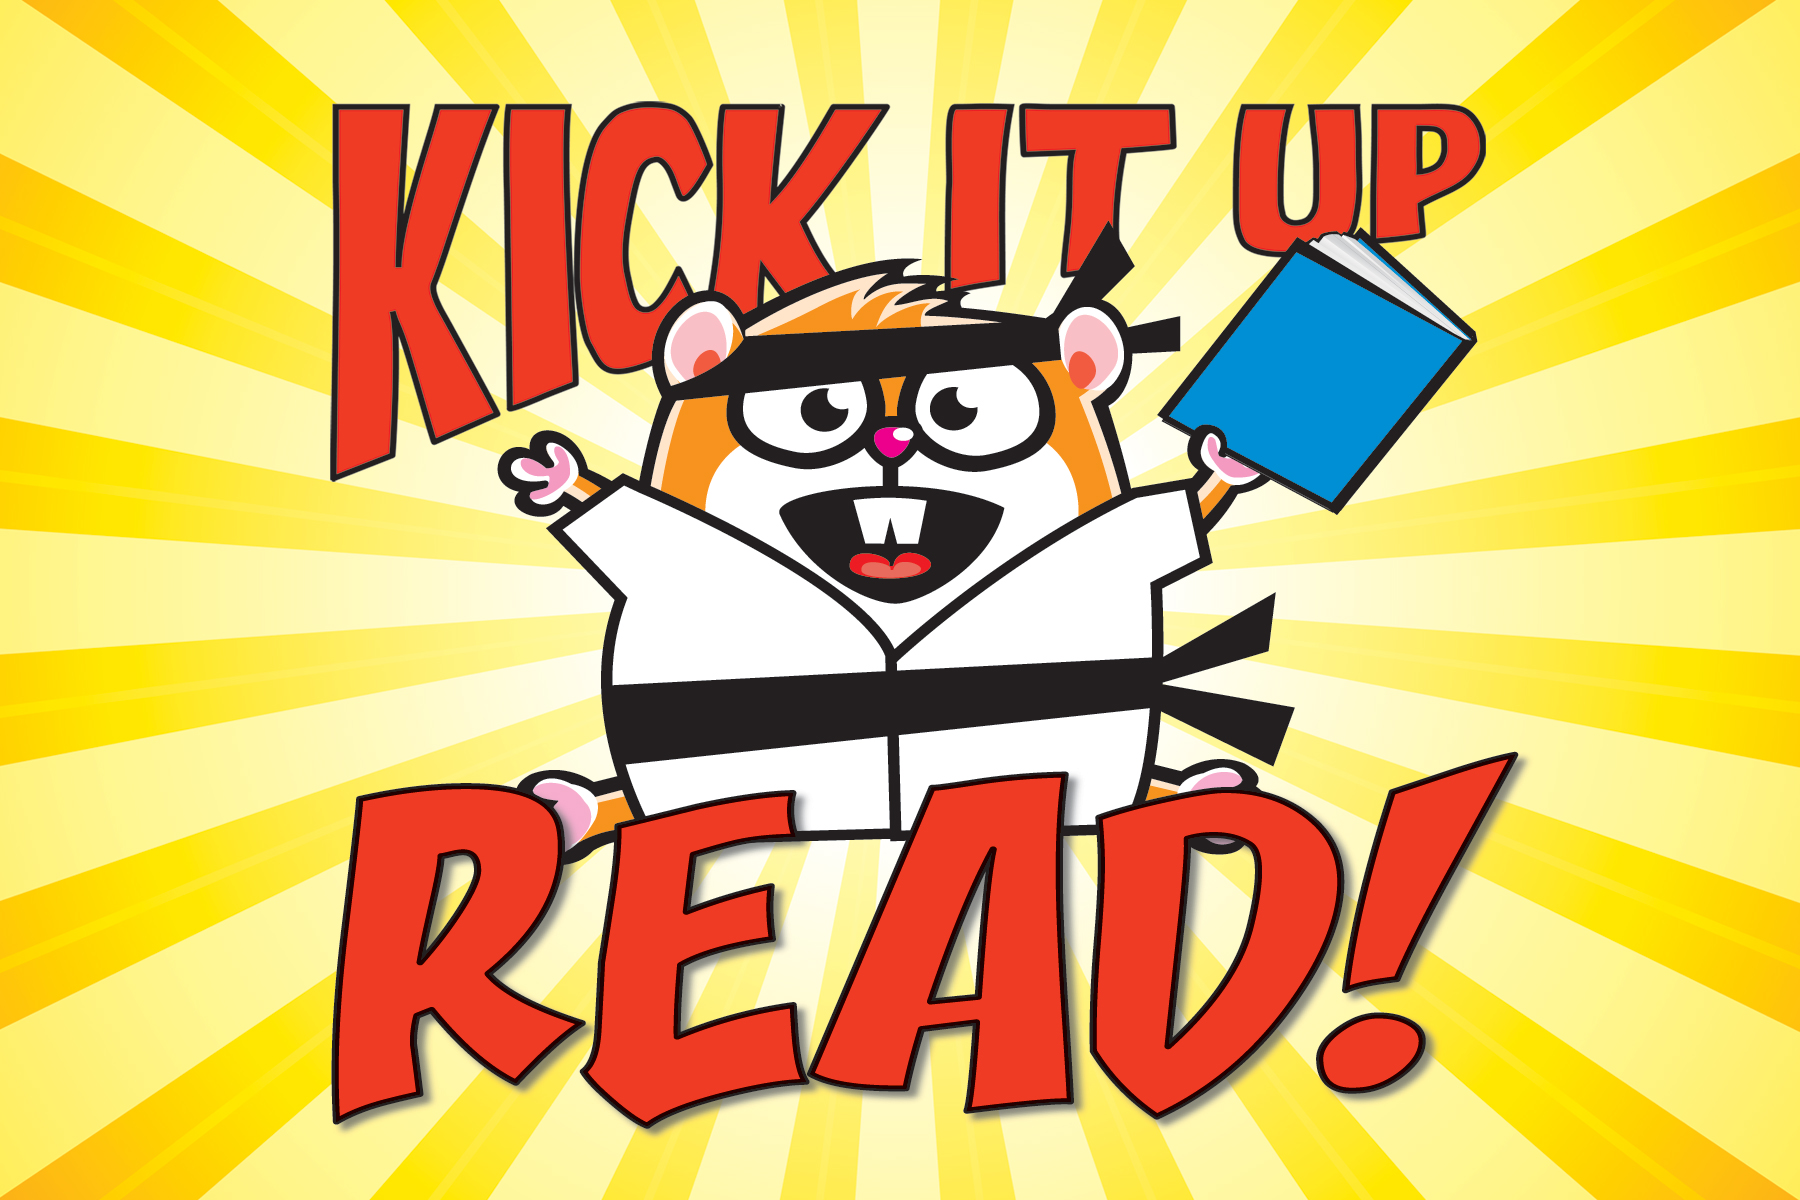 Kick It Up Read! Activity Guide - Ideas & Inspiration from Demco